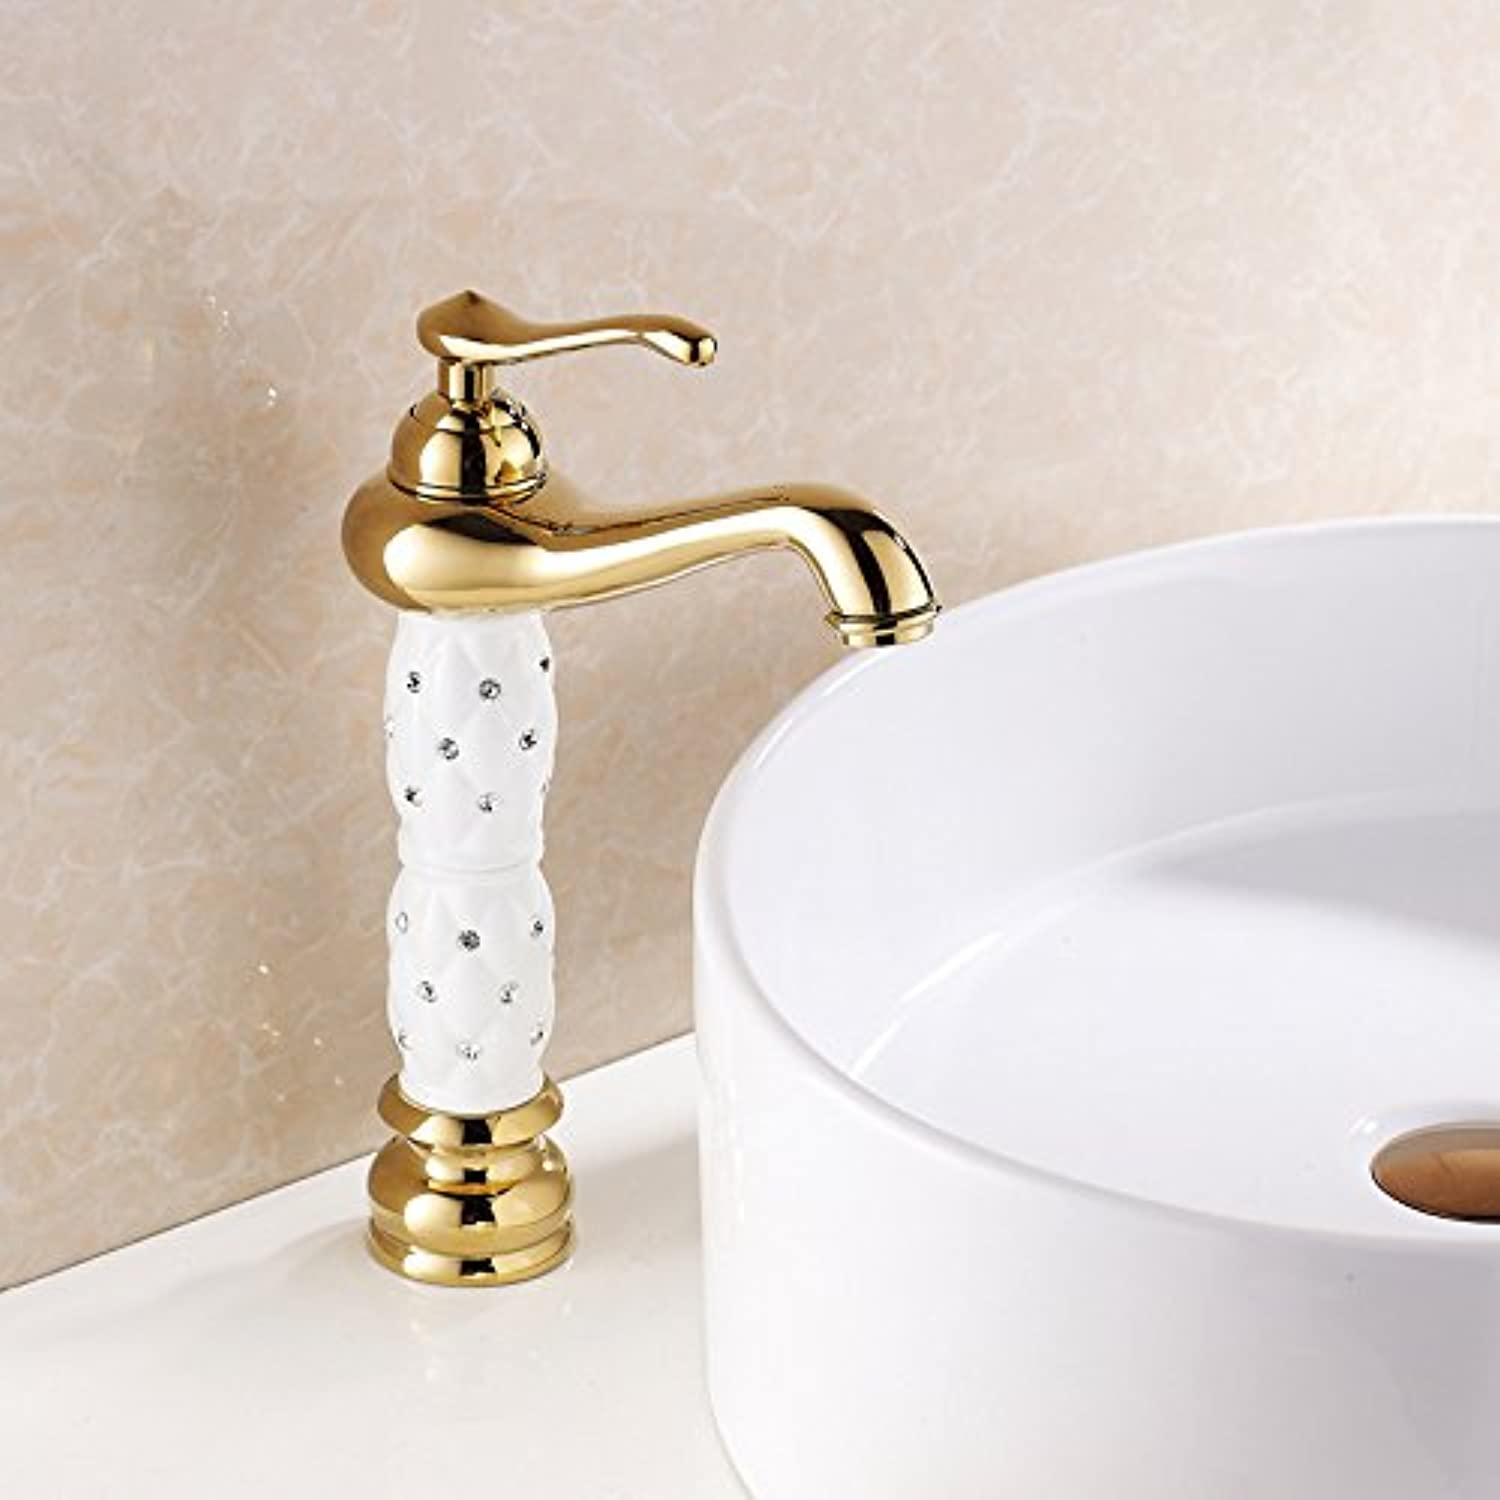 LHbox Basin Mixer Tap Bathroom Sink Faucet Basin mixer gold faucet white insert drill bench basin mixer basin of hot and cold, White